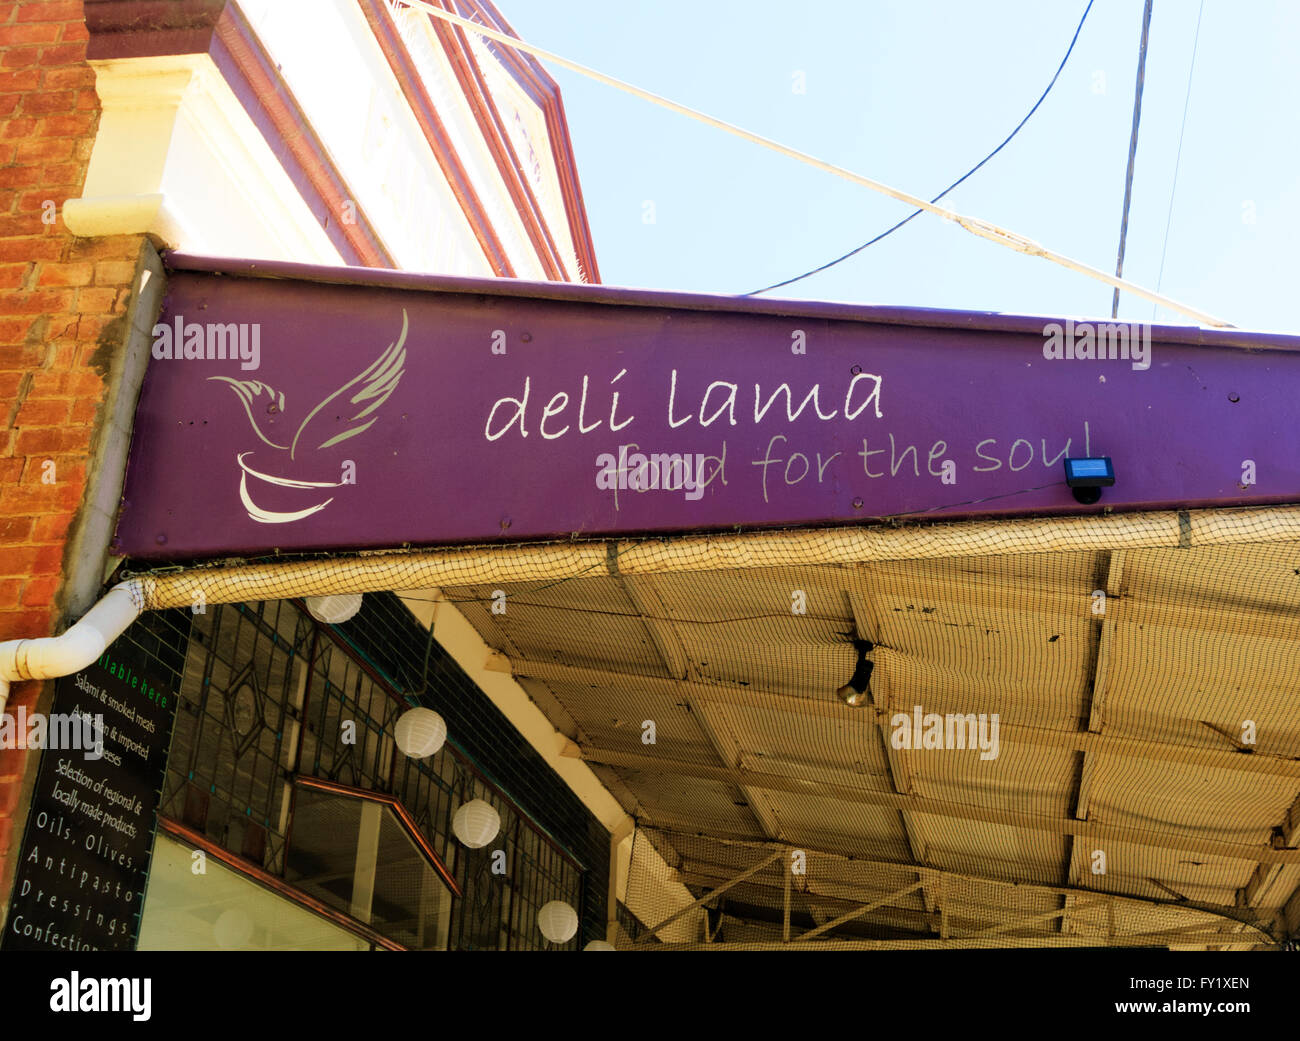 deli-lama-cafe-food-for-the-soul-canowin